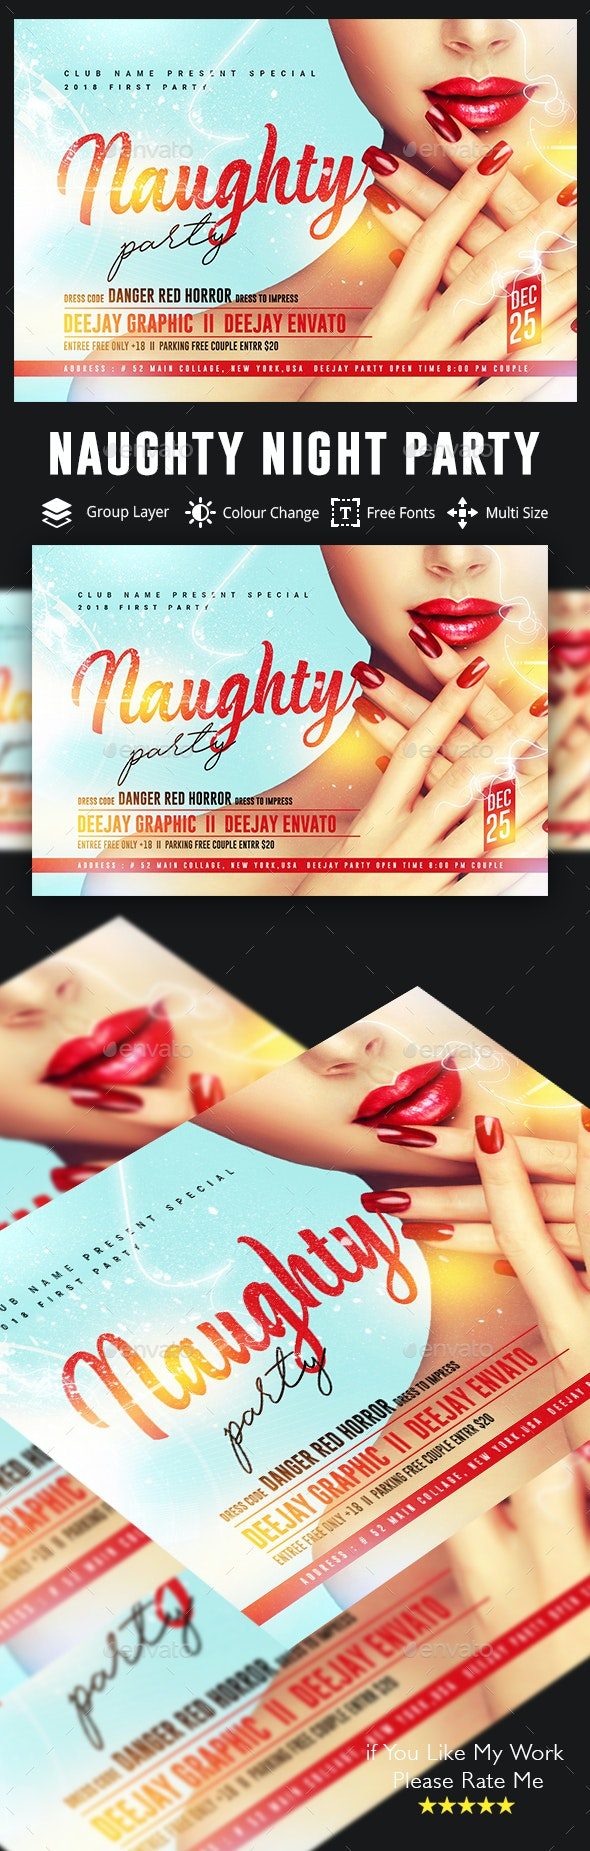 Naughty Party Flyer - Clubs & Parties Events